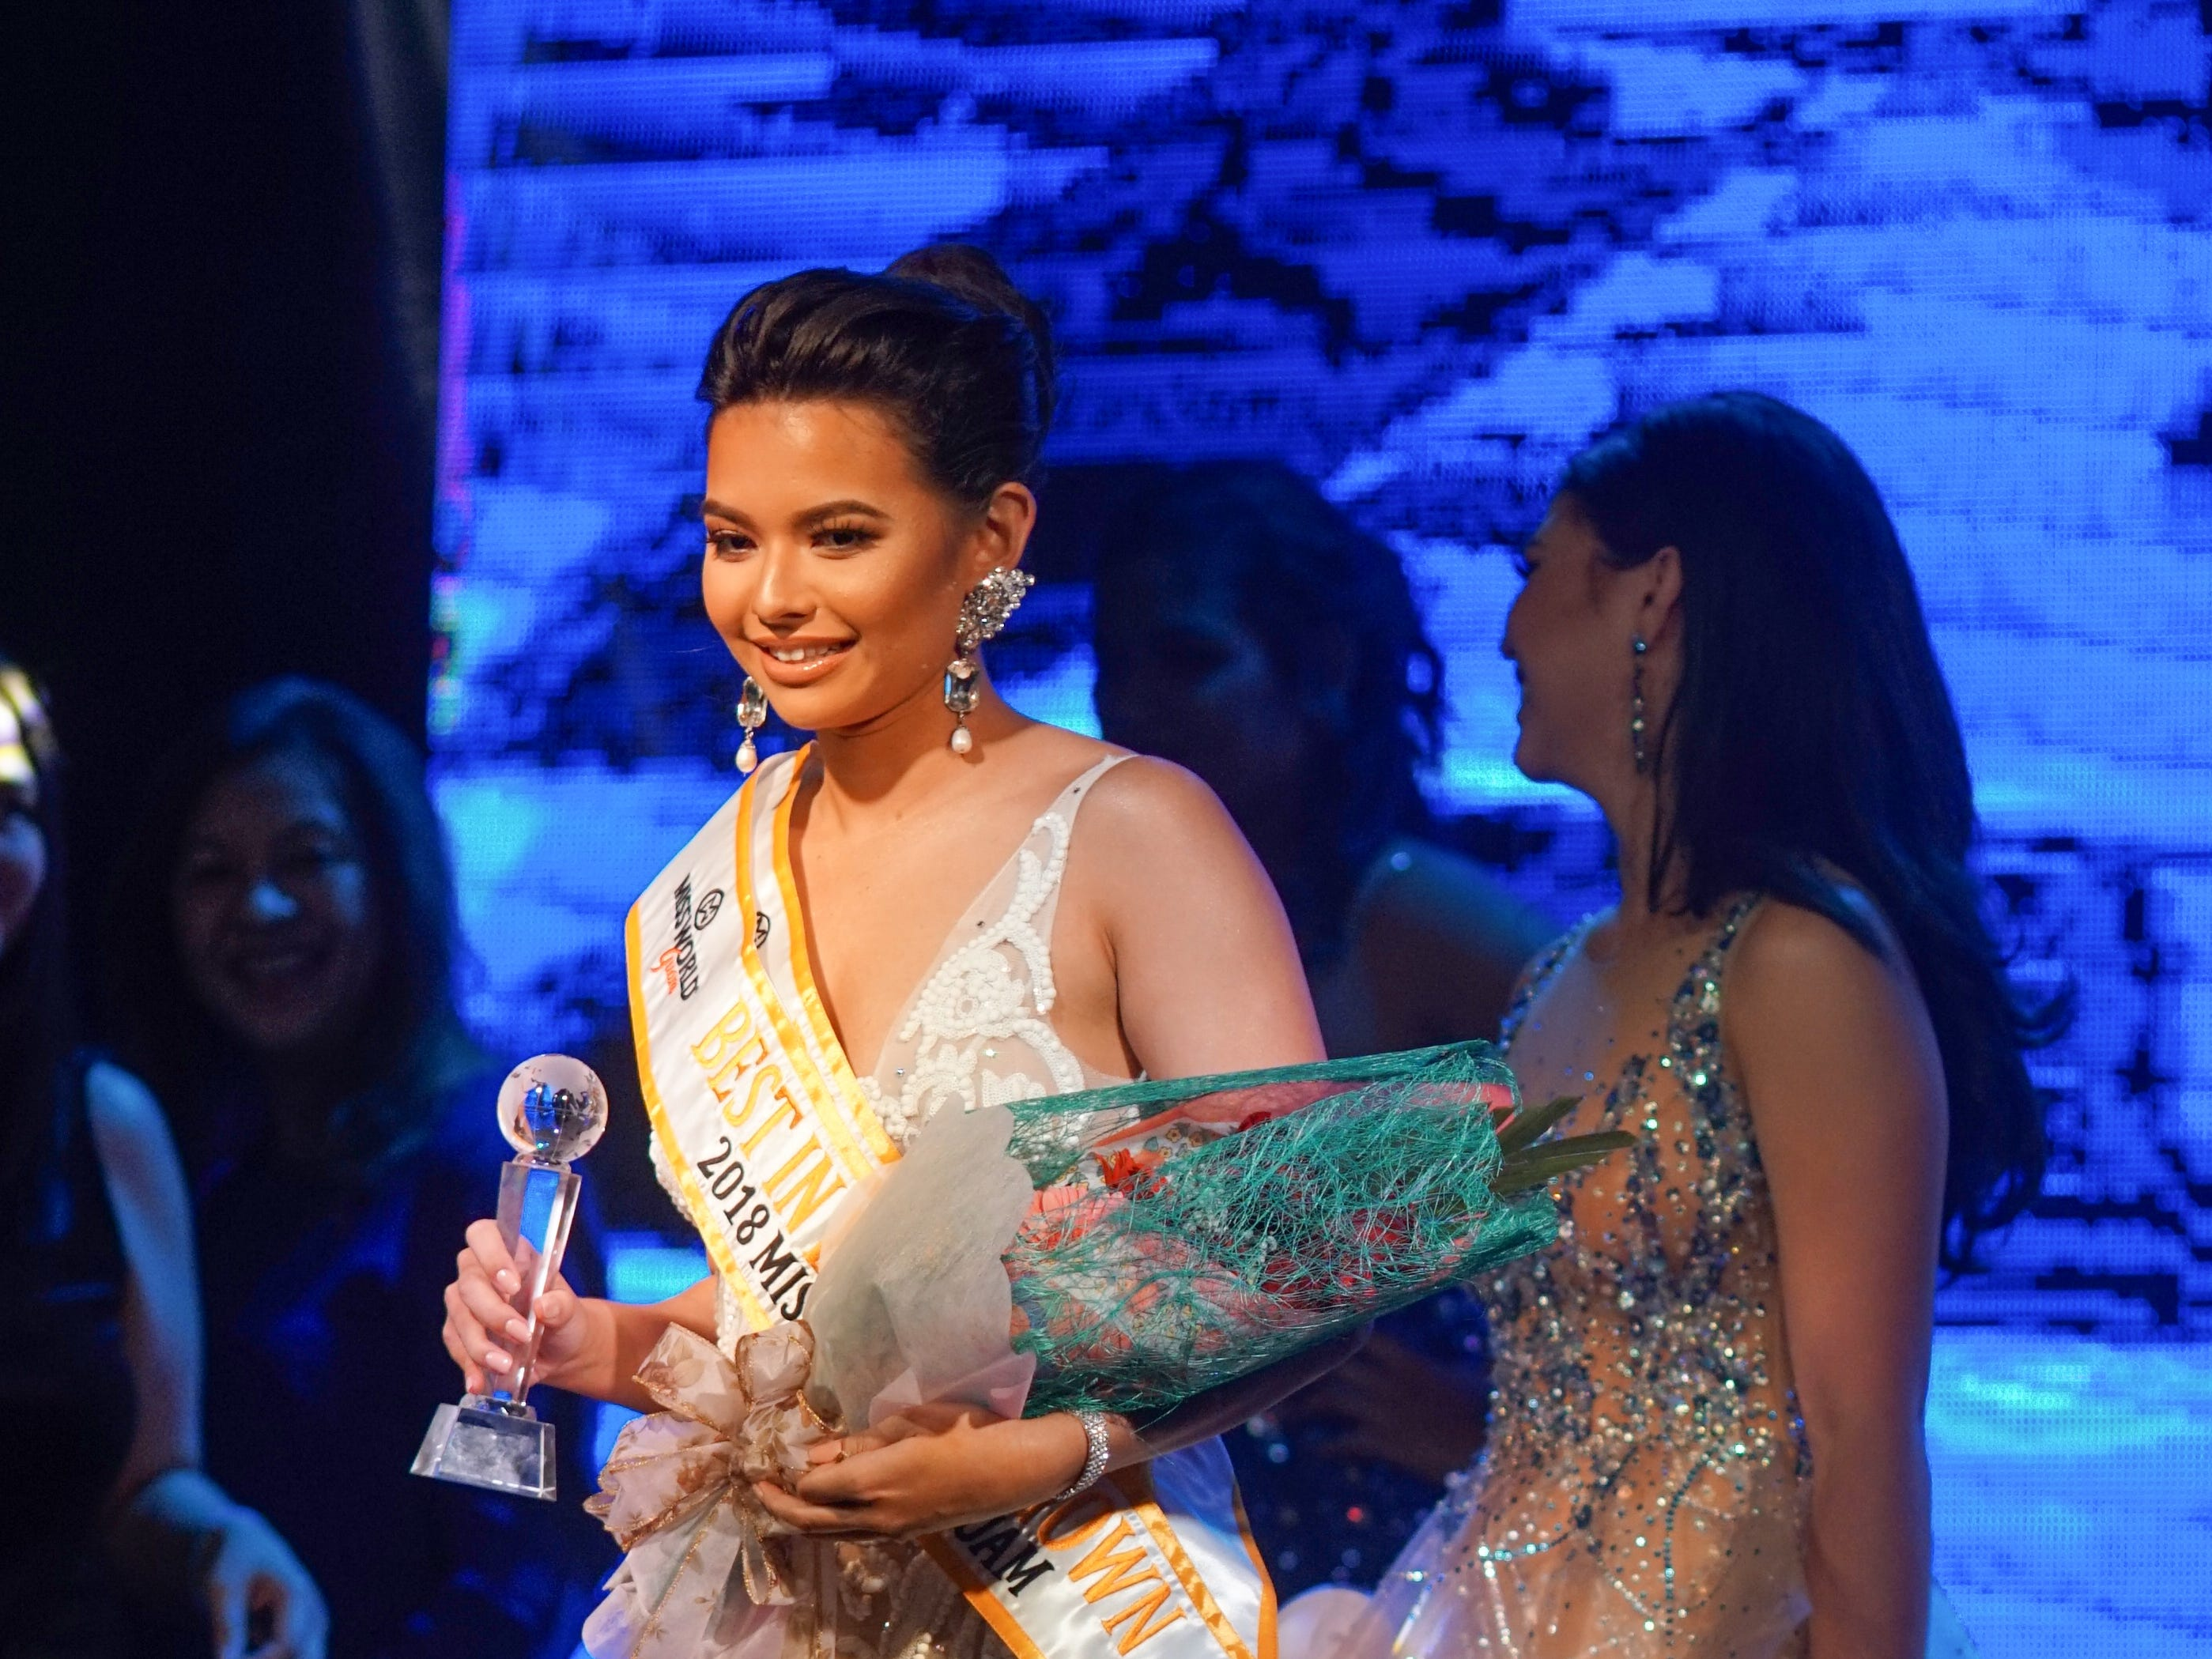 Contestant #2 Gianna Camacho Sgambelluri, 18, from Barrigada, wins Best In Evening Gowncategory at the  2018 Miss World Guam pageant held at Sheraton Laguna Guam Resort.